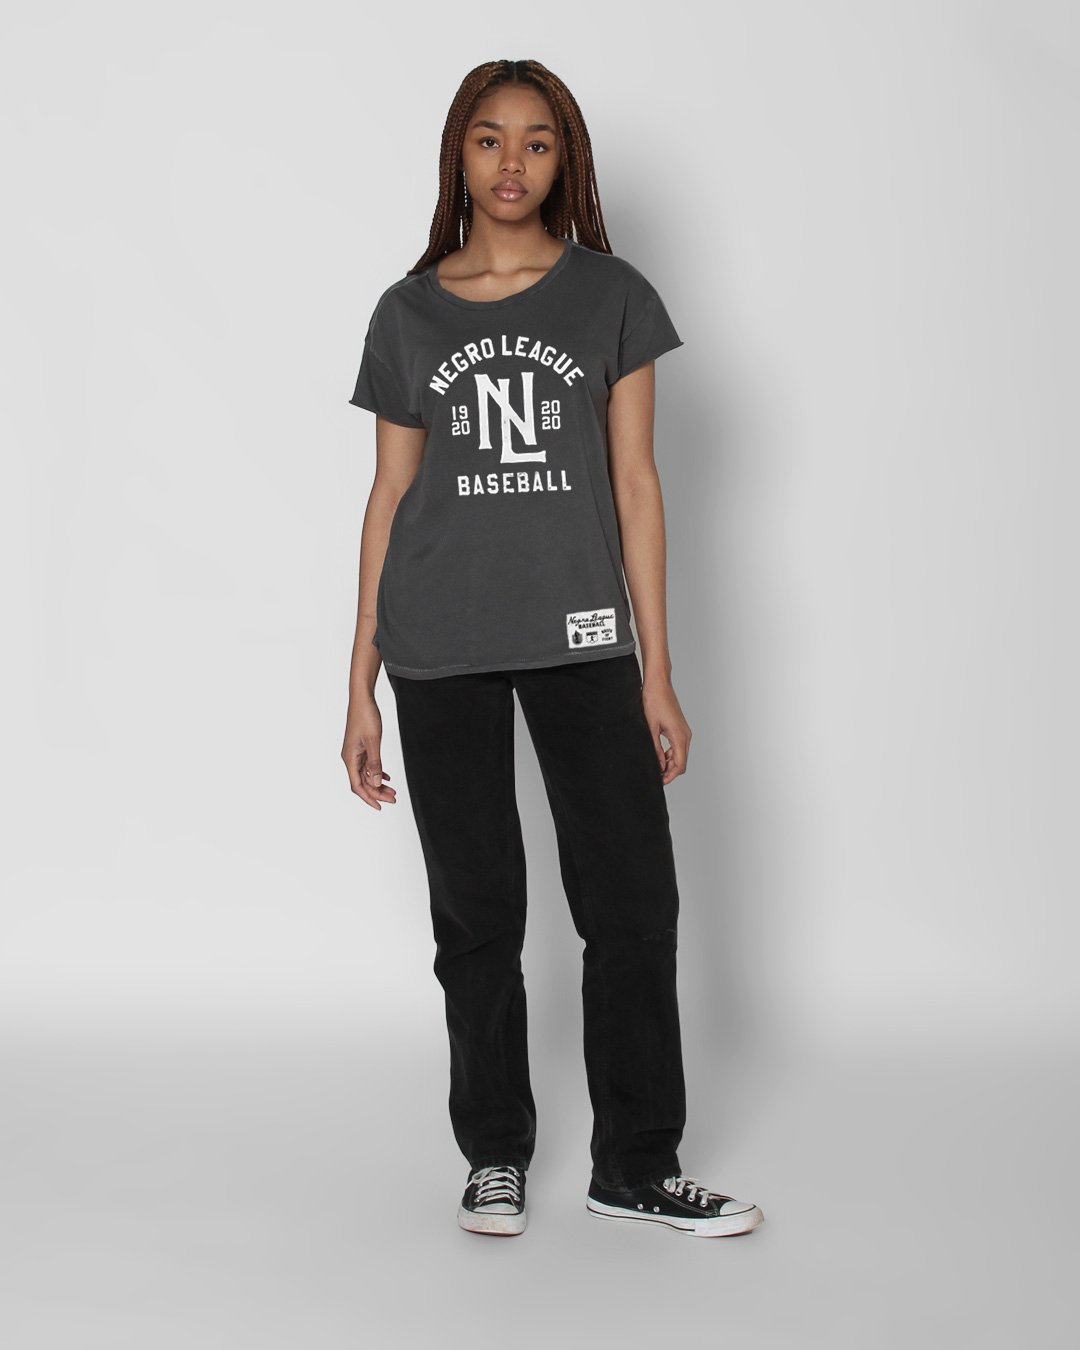 BHT - Negro League Baseball Women's Tee - Roots of Inc dba Roots of Fight